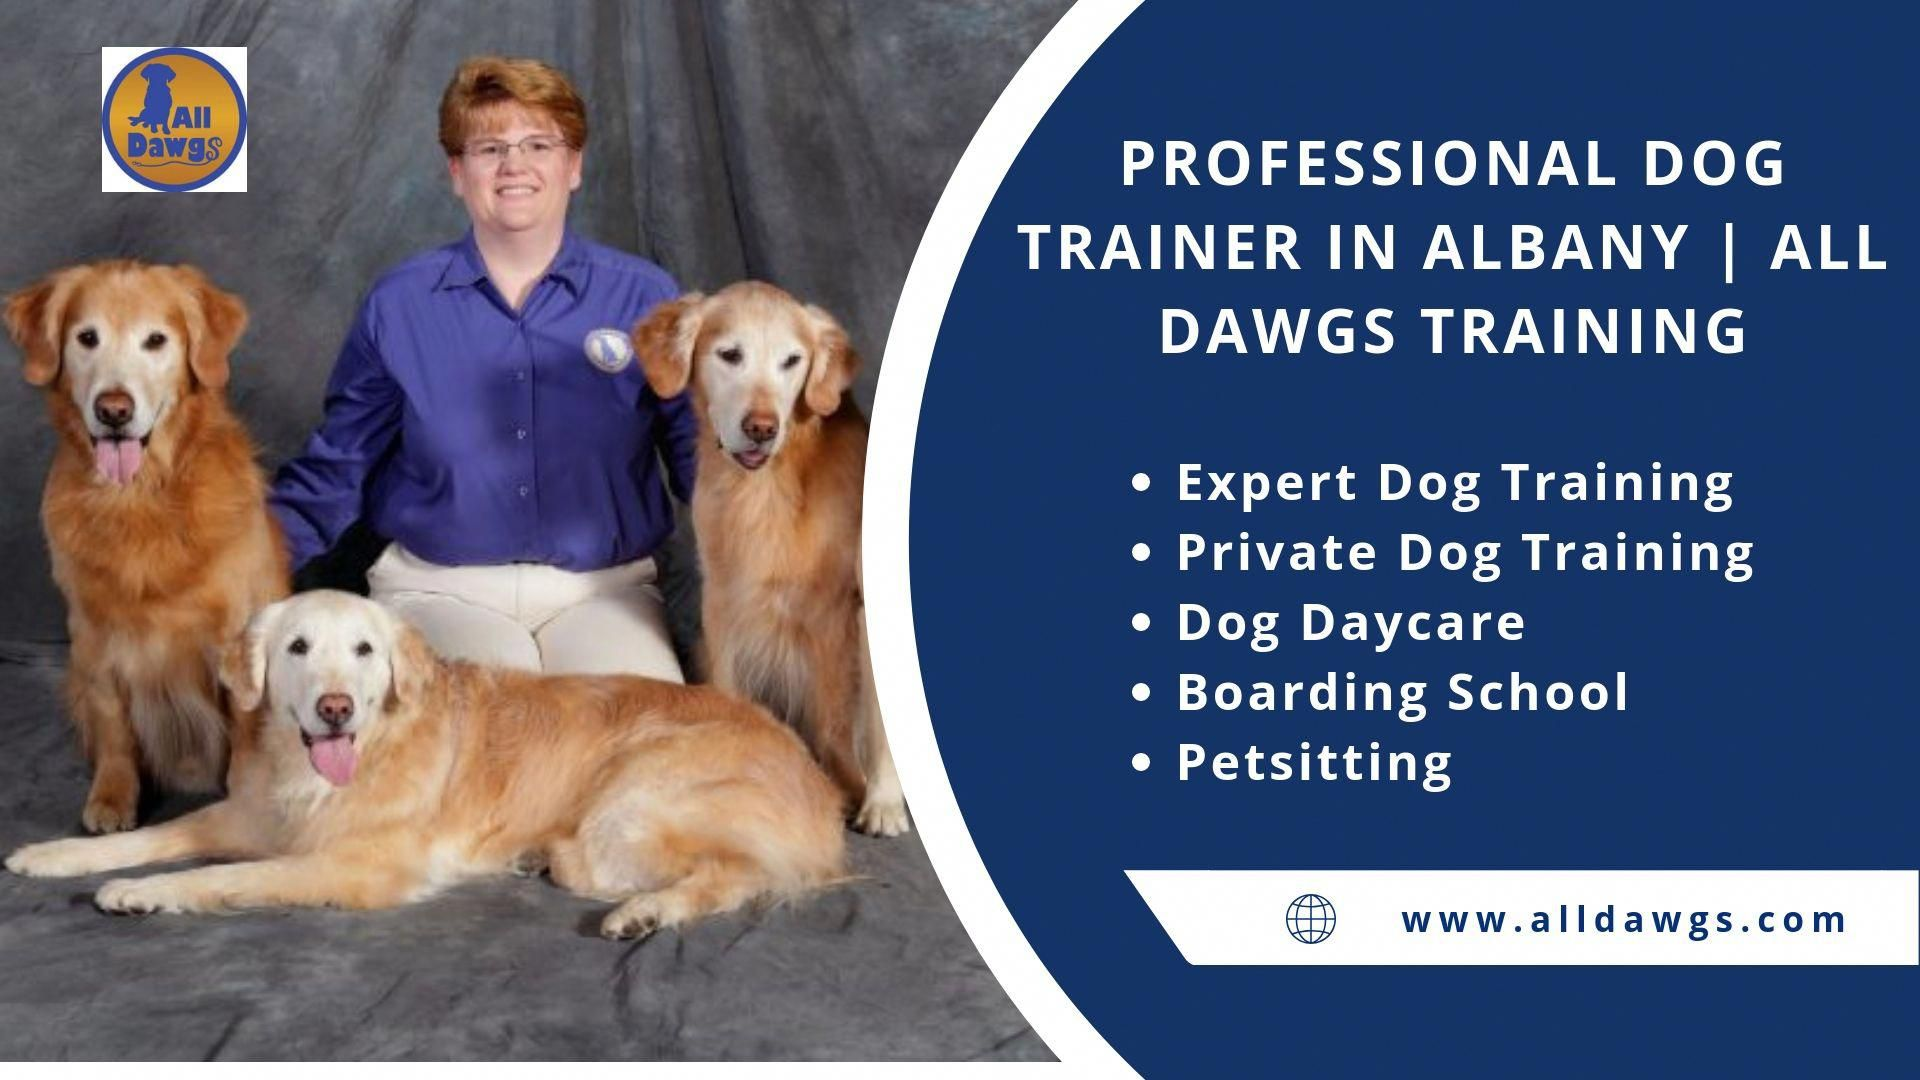 All Dawgs Offer The Professional Dog Training In Albany Including